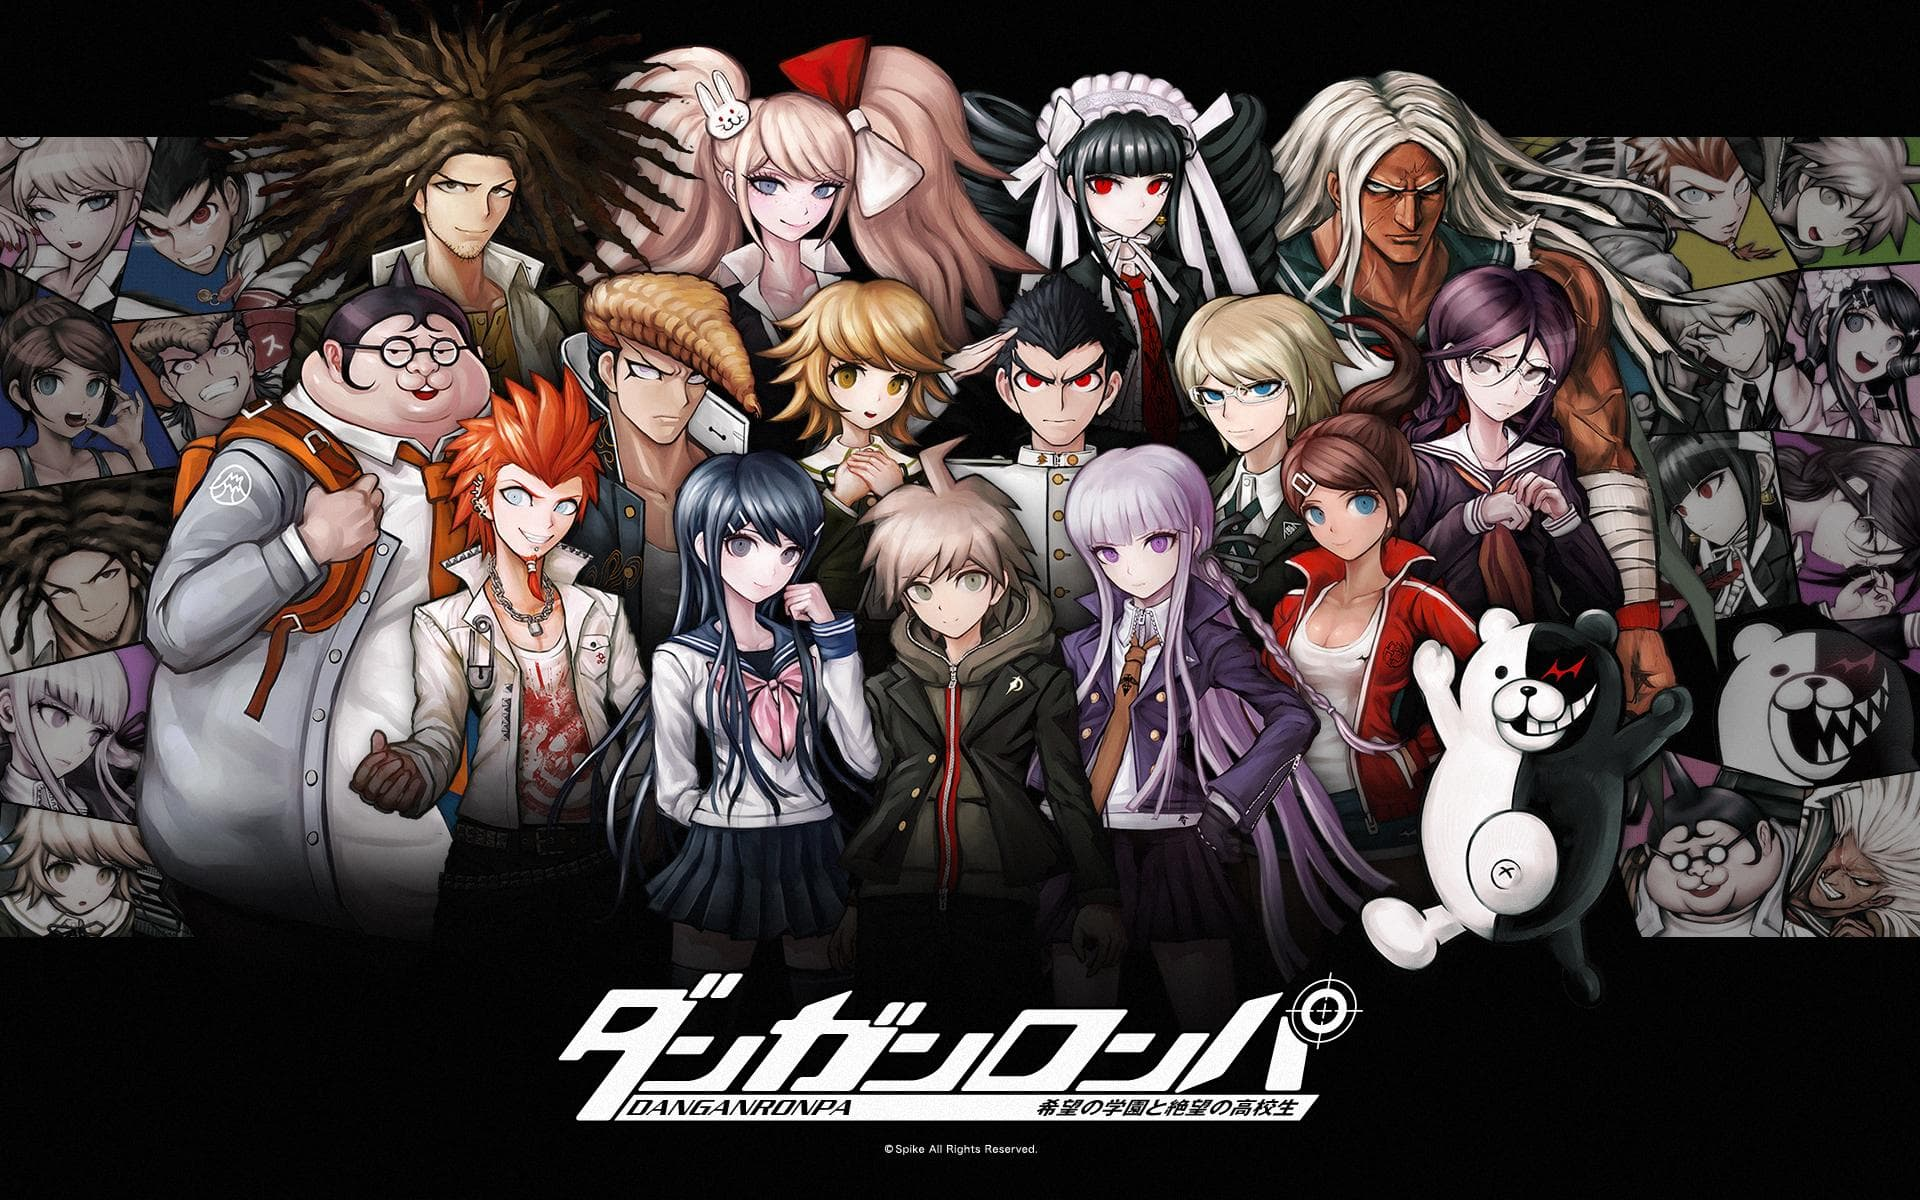 Danganronpa: Trigger Happy Havoc Wallpapers hd